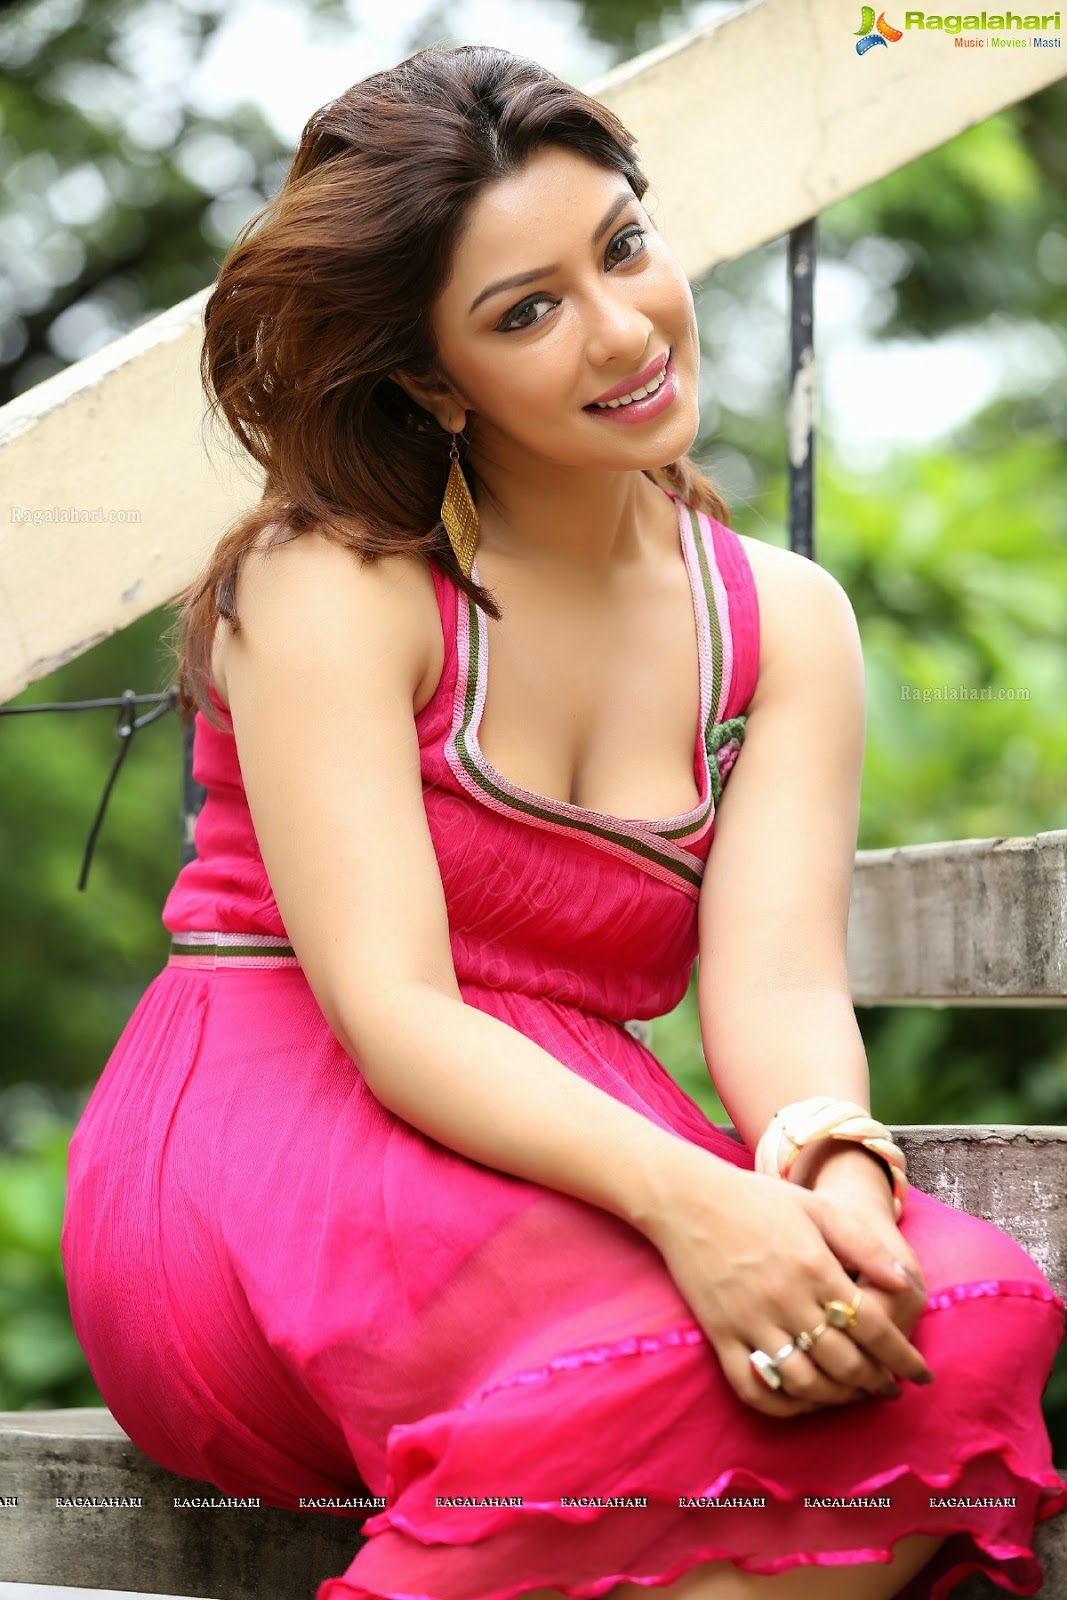 sumon4all payal ghosh 2